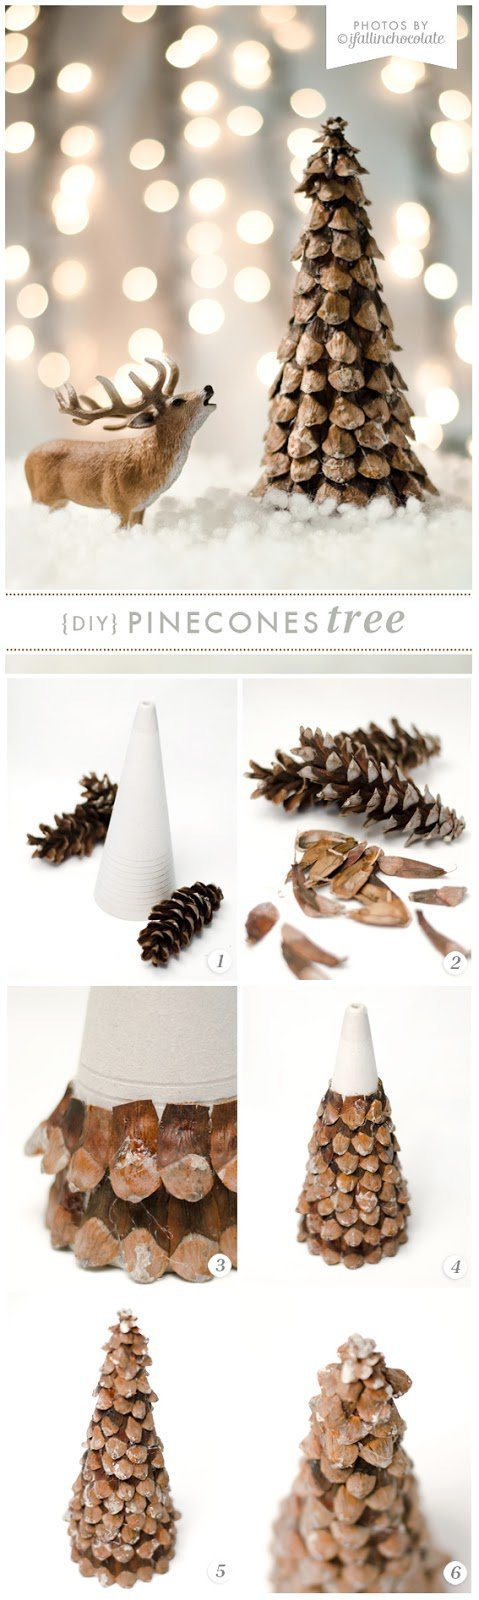 DIY_Pinecone-tree_tutorial